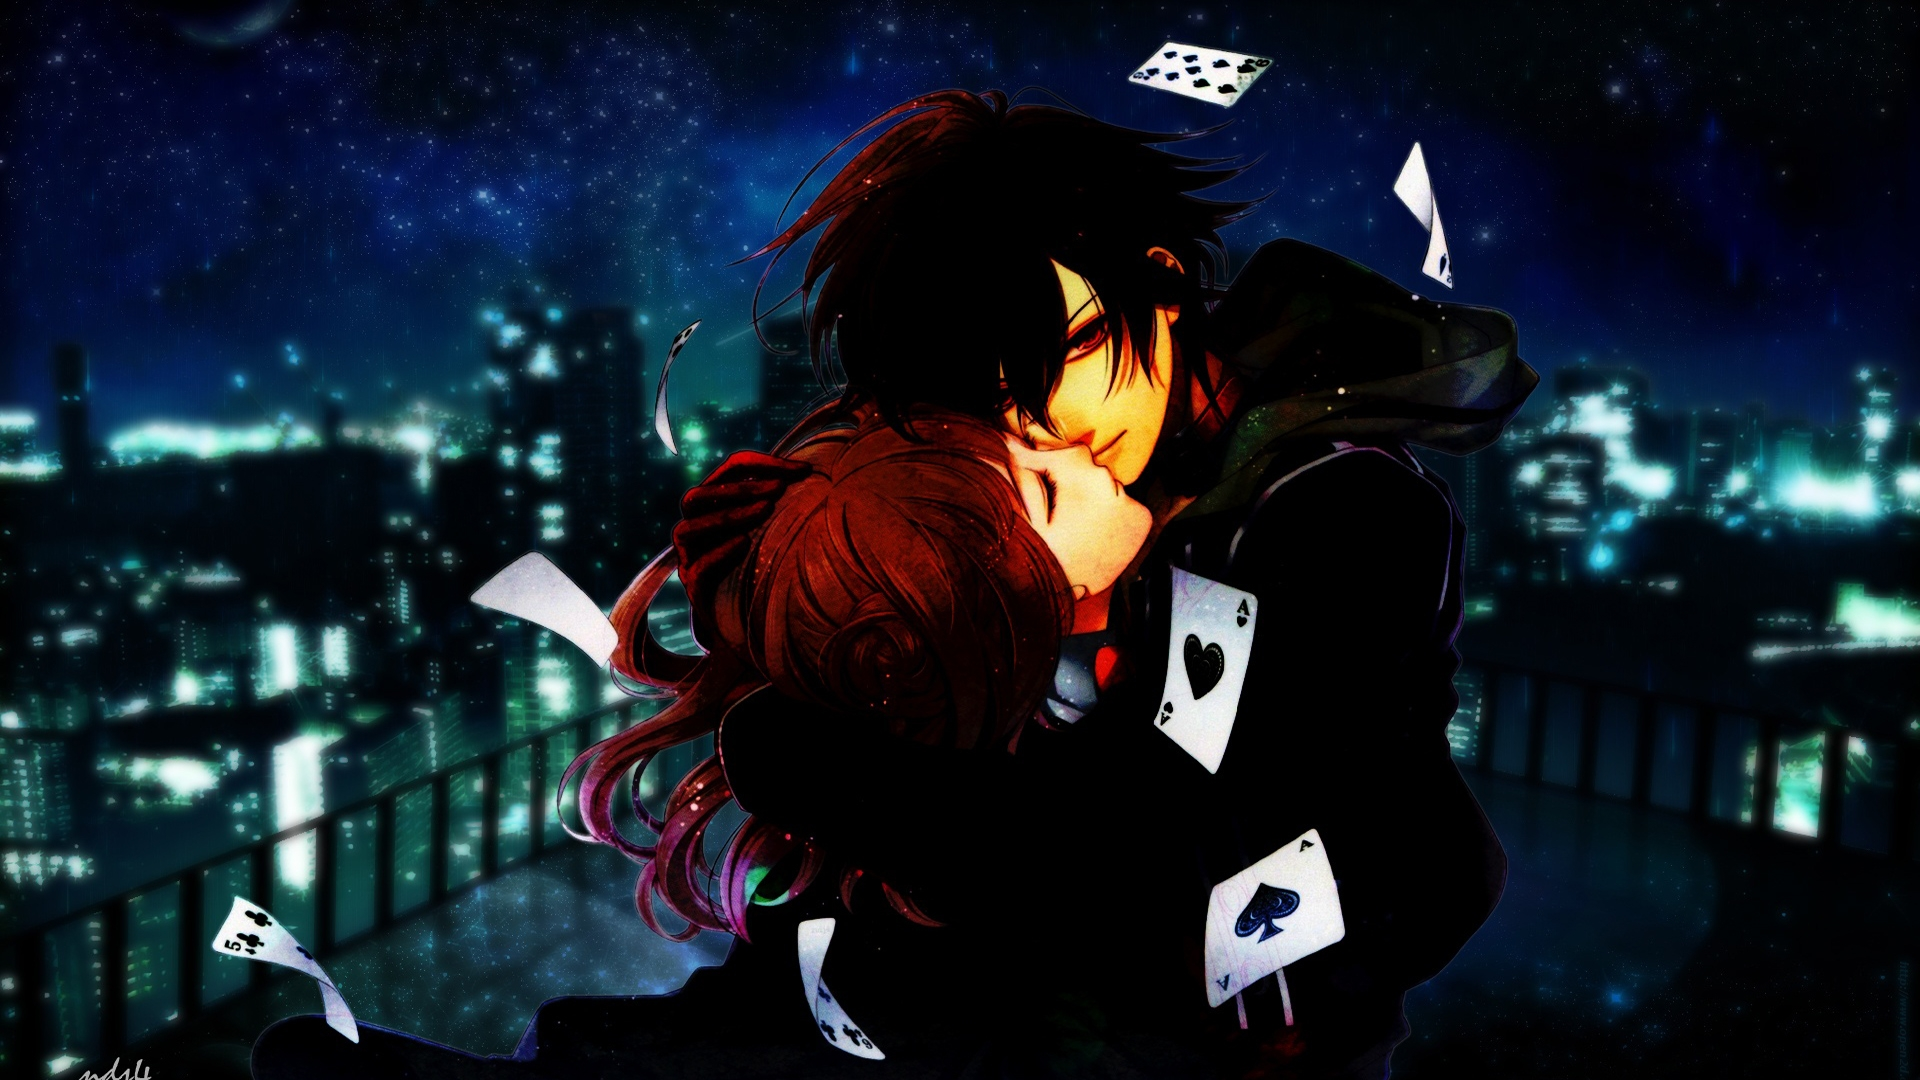 Anime Love Wallpaper 539   HD Wallpapers Site 1920x1080